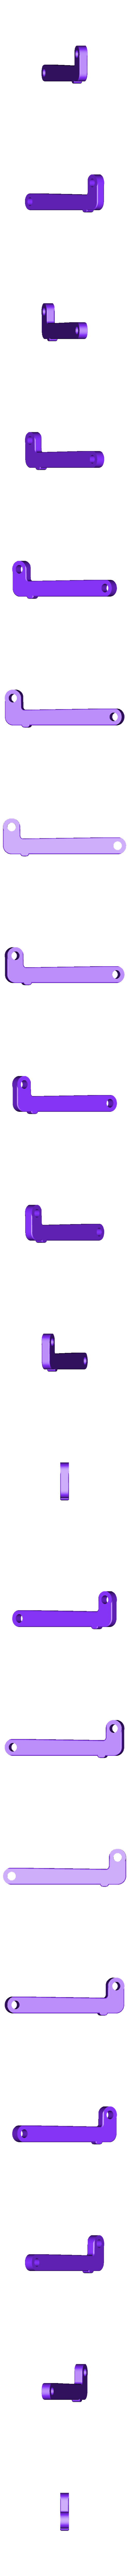 Back.stl Download free STL file Lifting Gear For Automatic Nozzle Cleaner • 3D print template, Ruvimkub